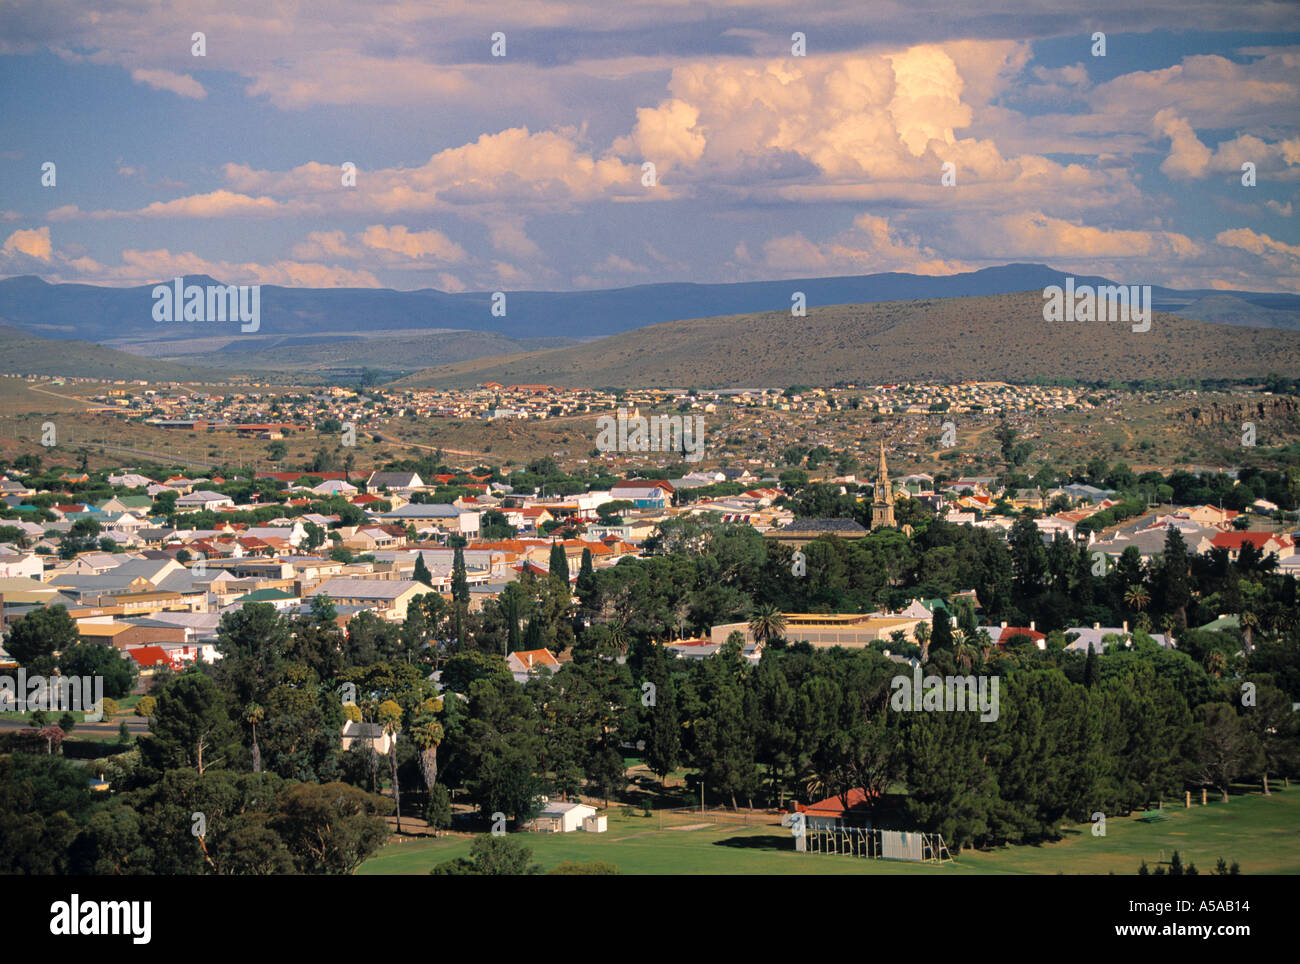 Karoo Town, Eastern Cape, South Africa - Stock Image